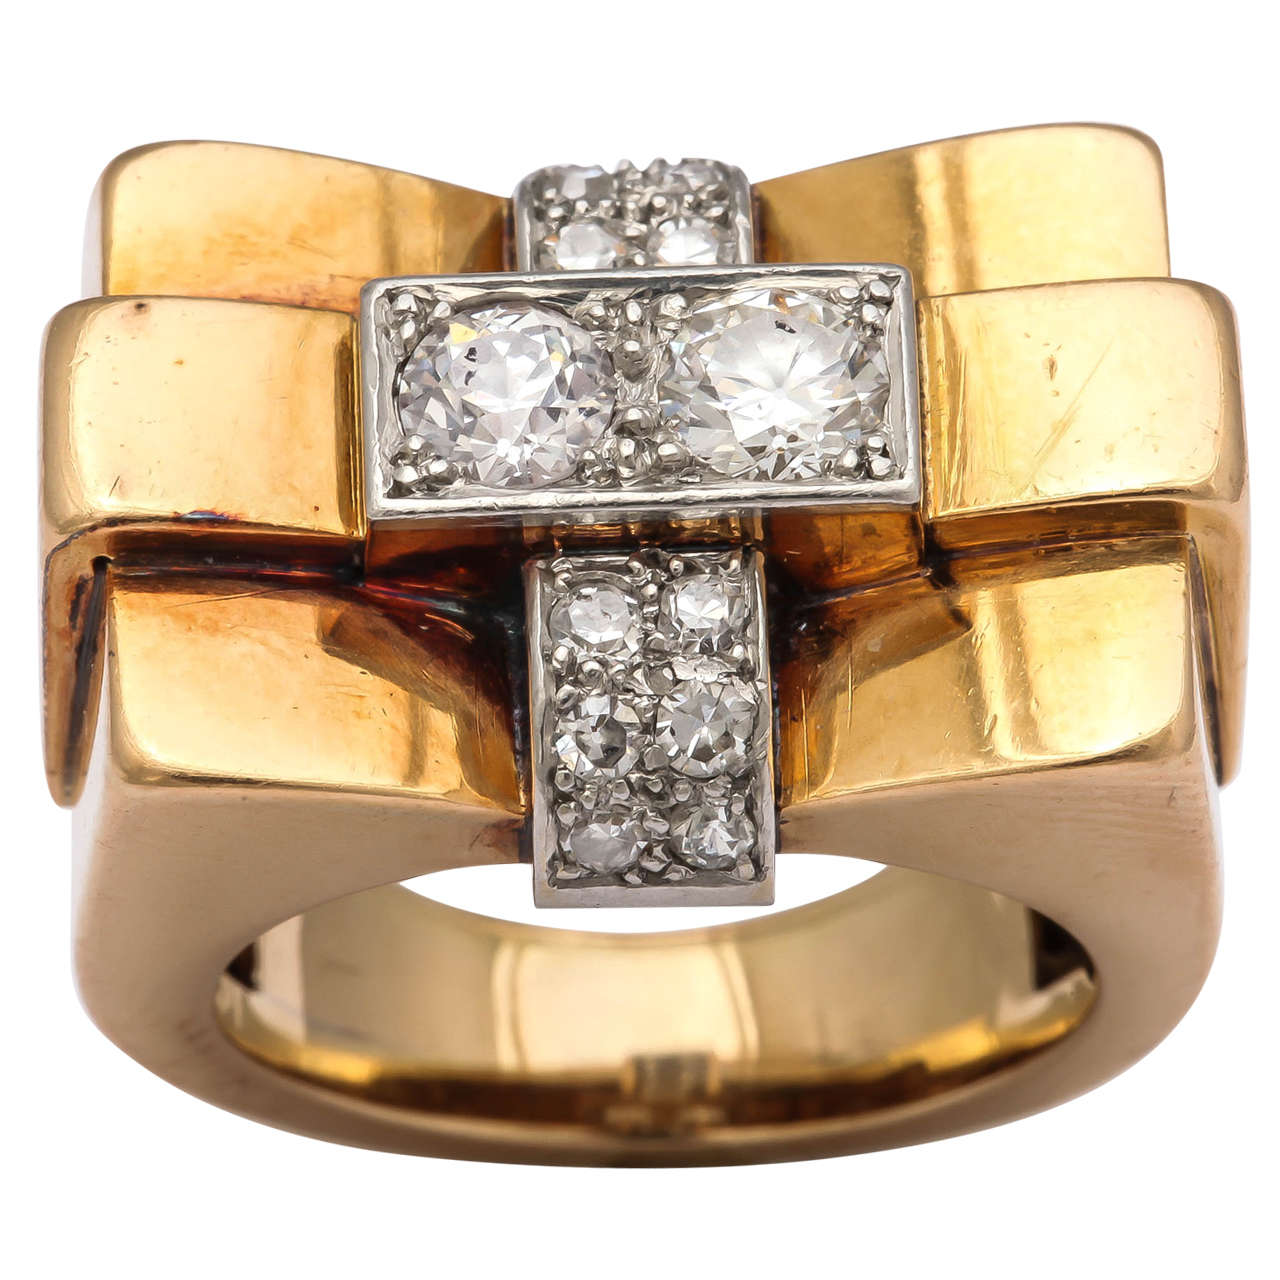 1940s French Diamond Gold Bridge Ring 2